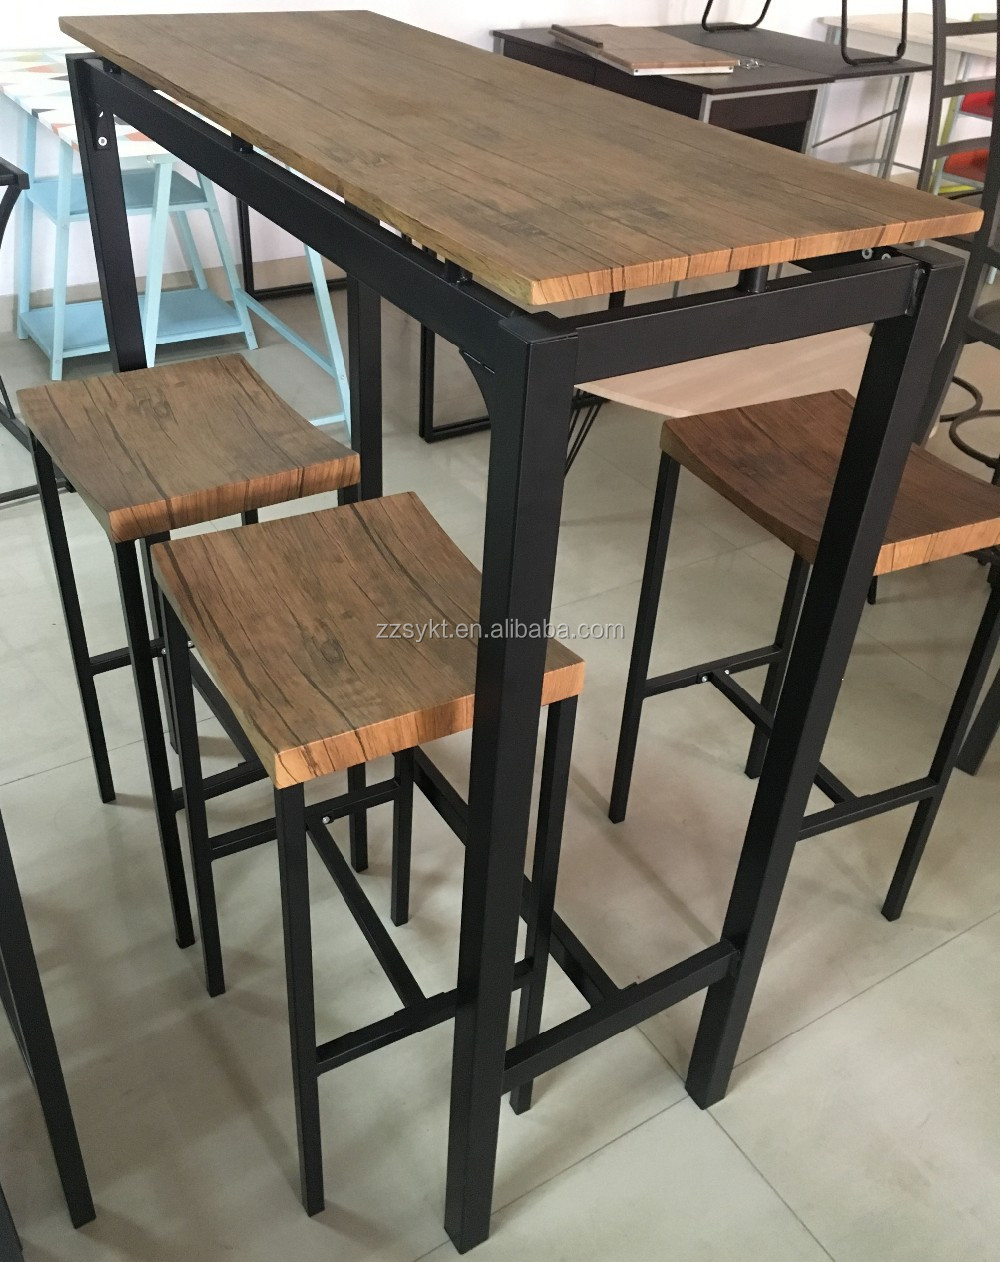 Modern Lounge Pub Furniture Metal Legs Frame Wood Top Bar